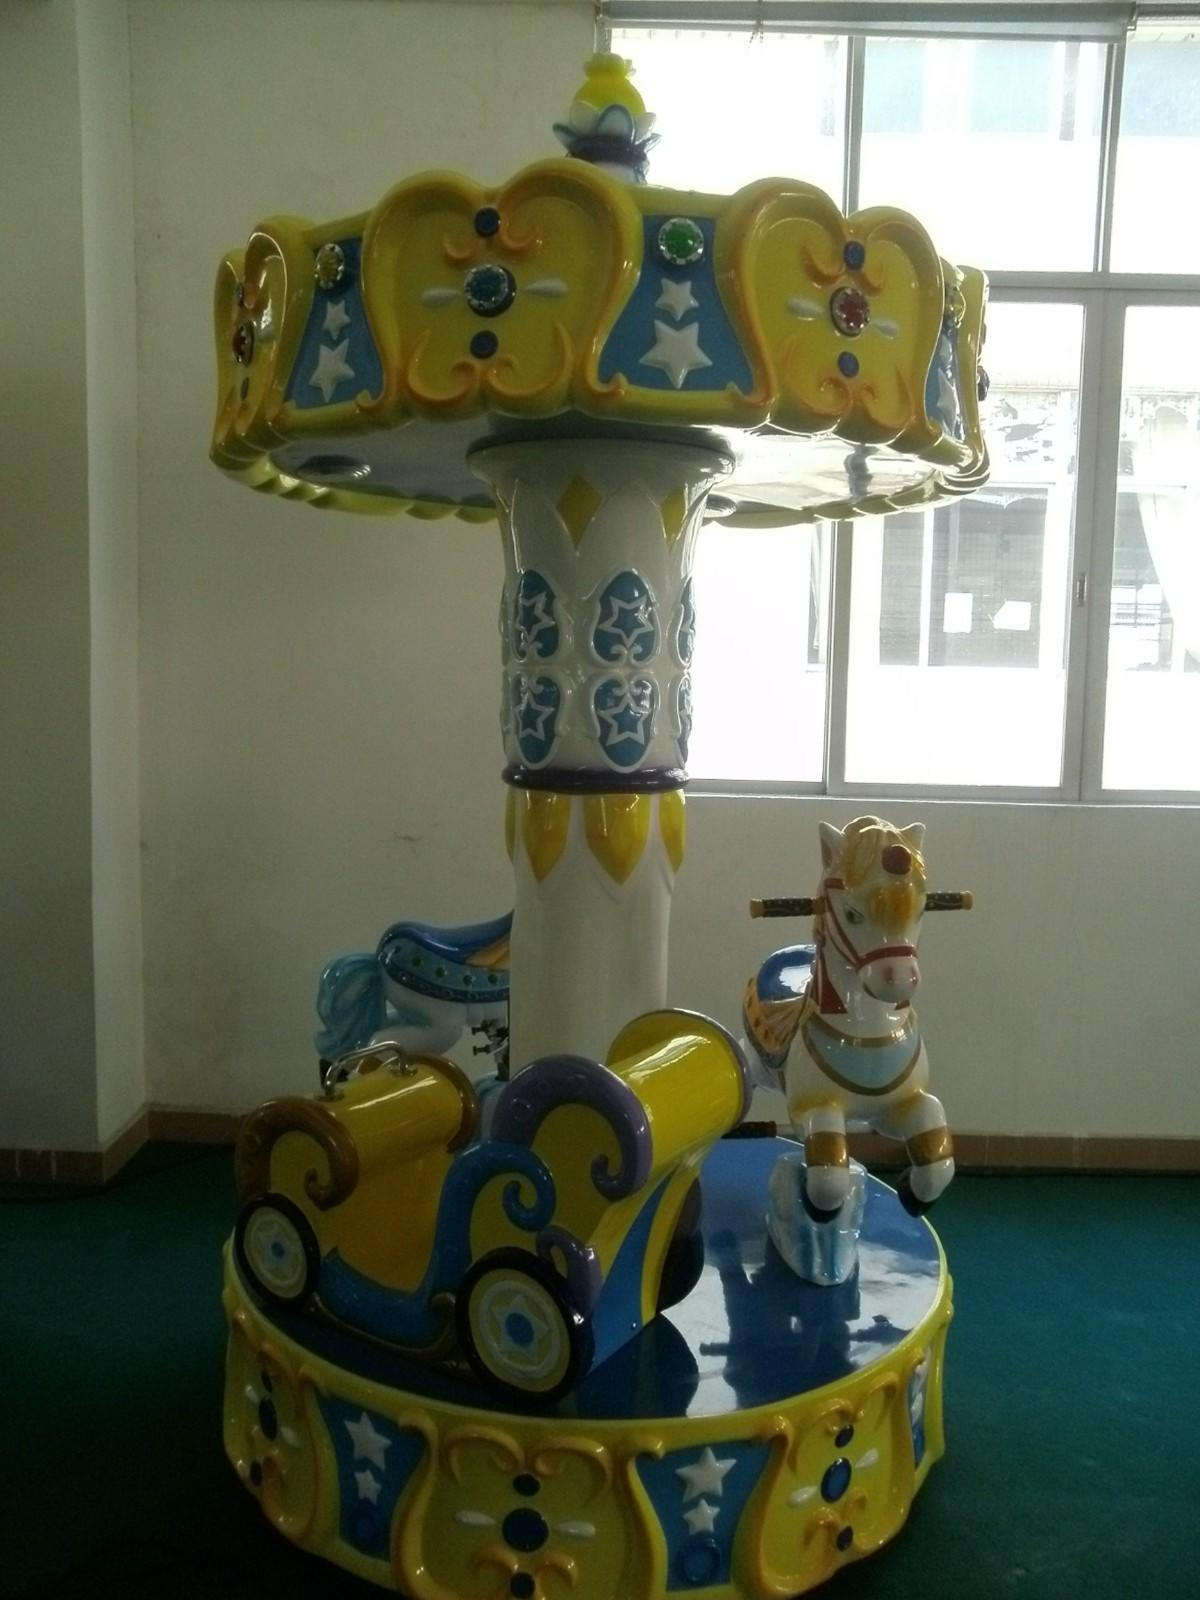 LETIAN horses carousel for kids design fairground